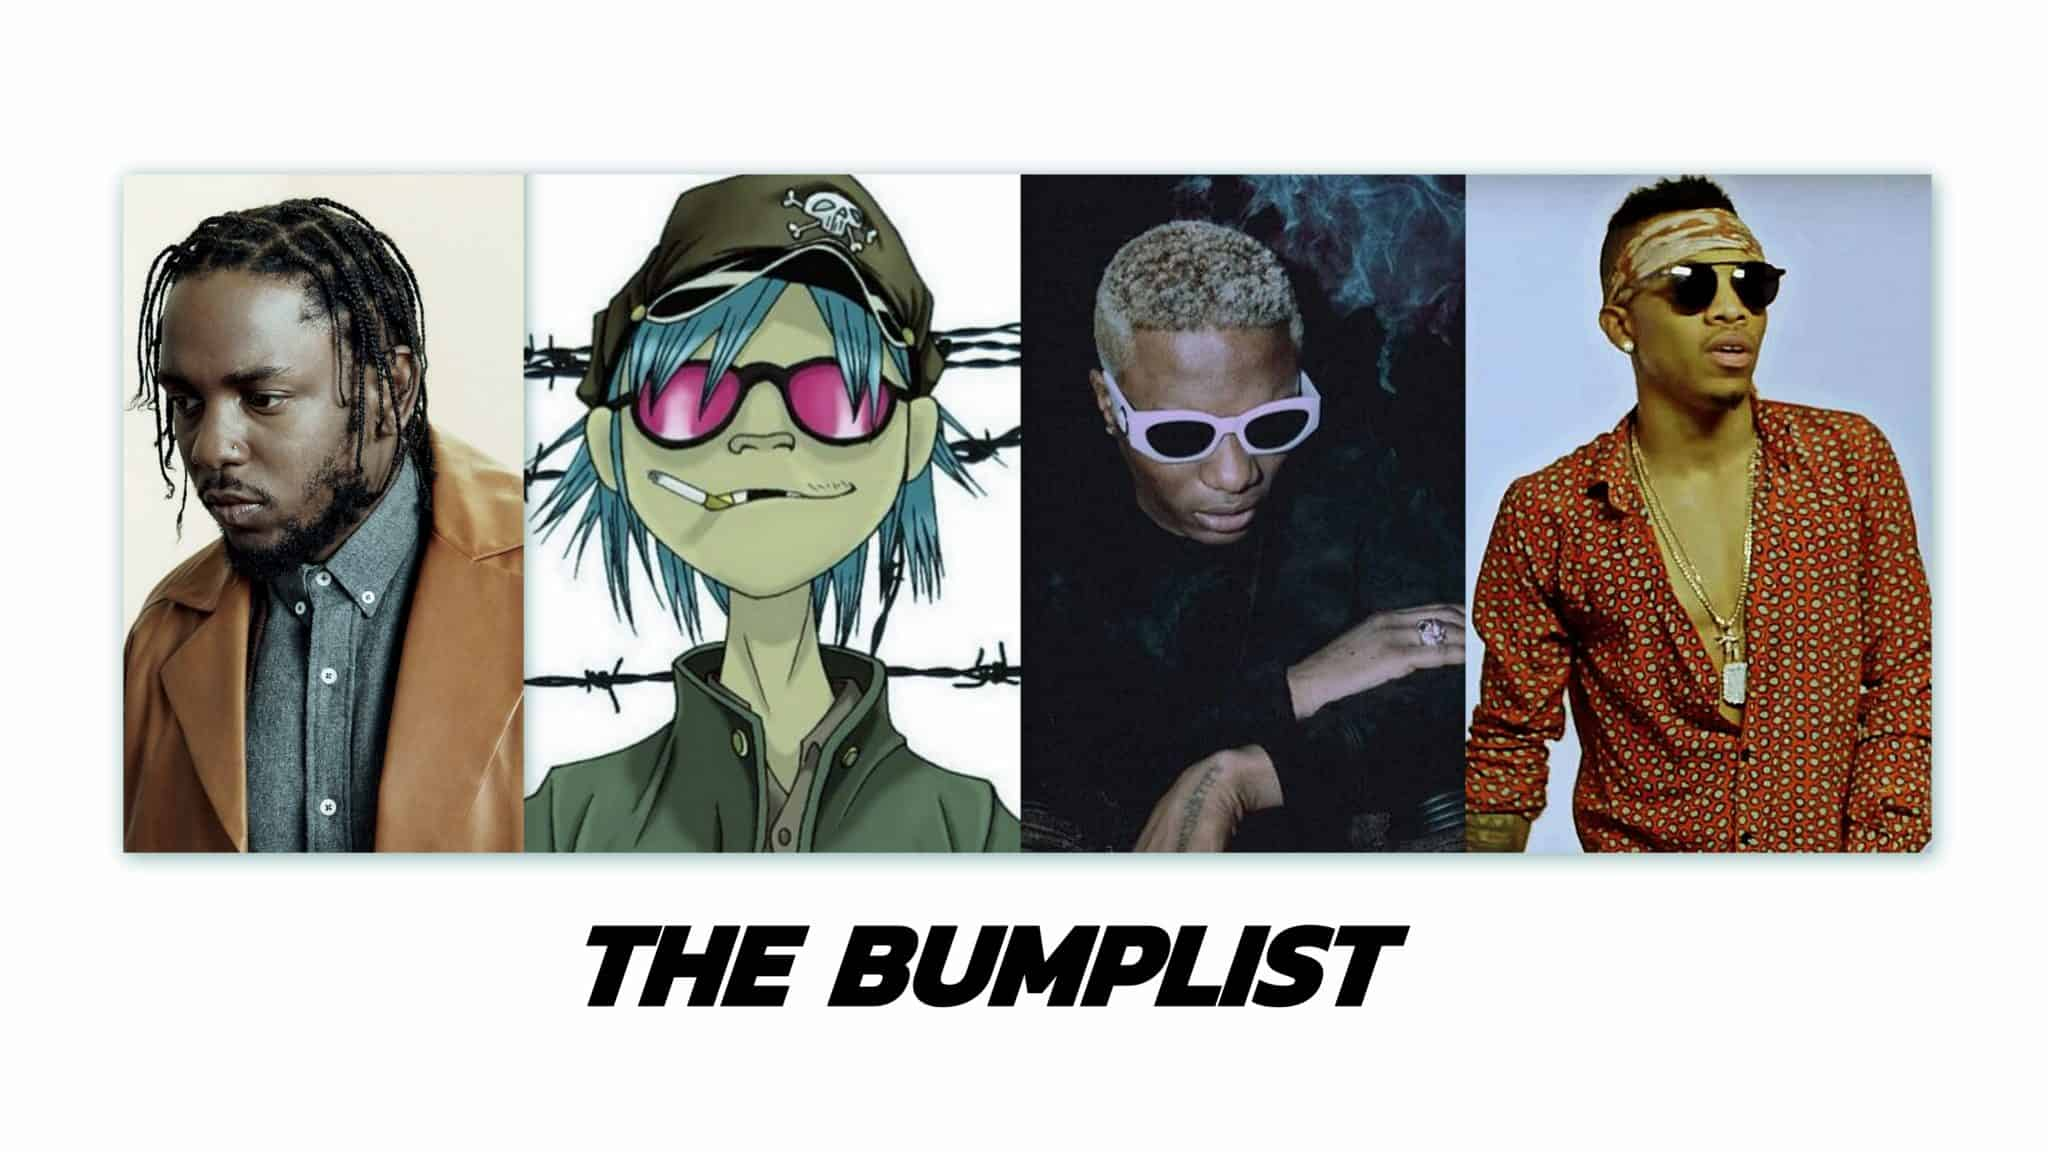 The Bumplist: Wizkid, Kendrick Lamar and 6 other artists you need right now